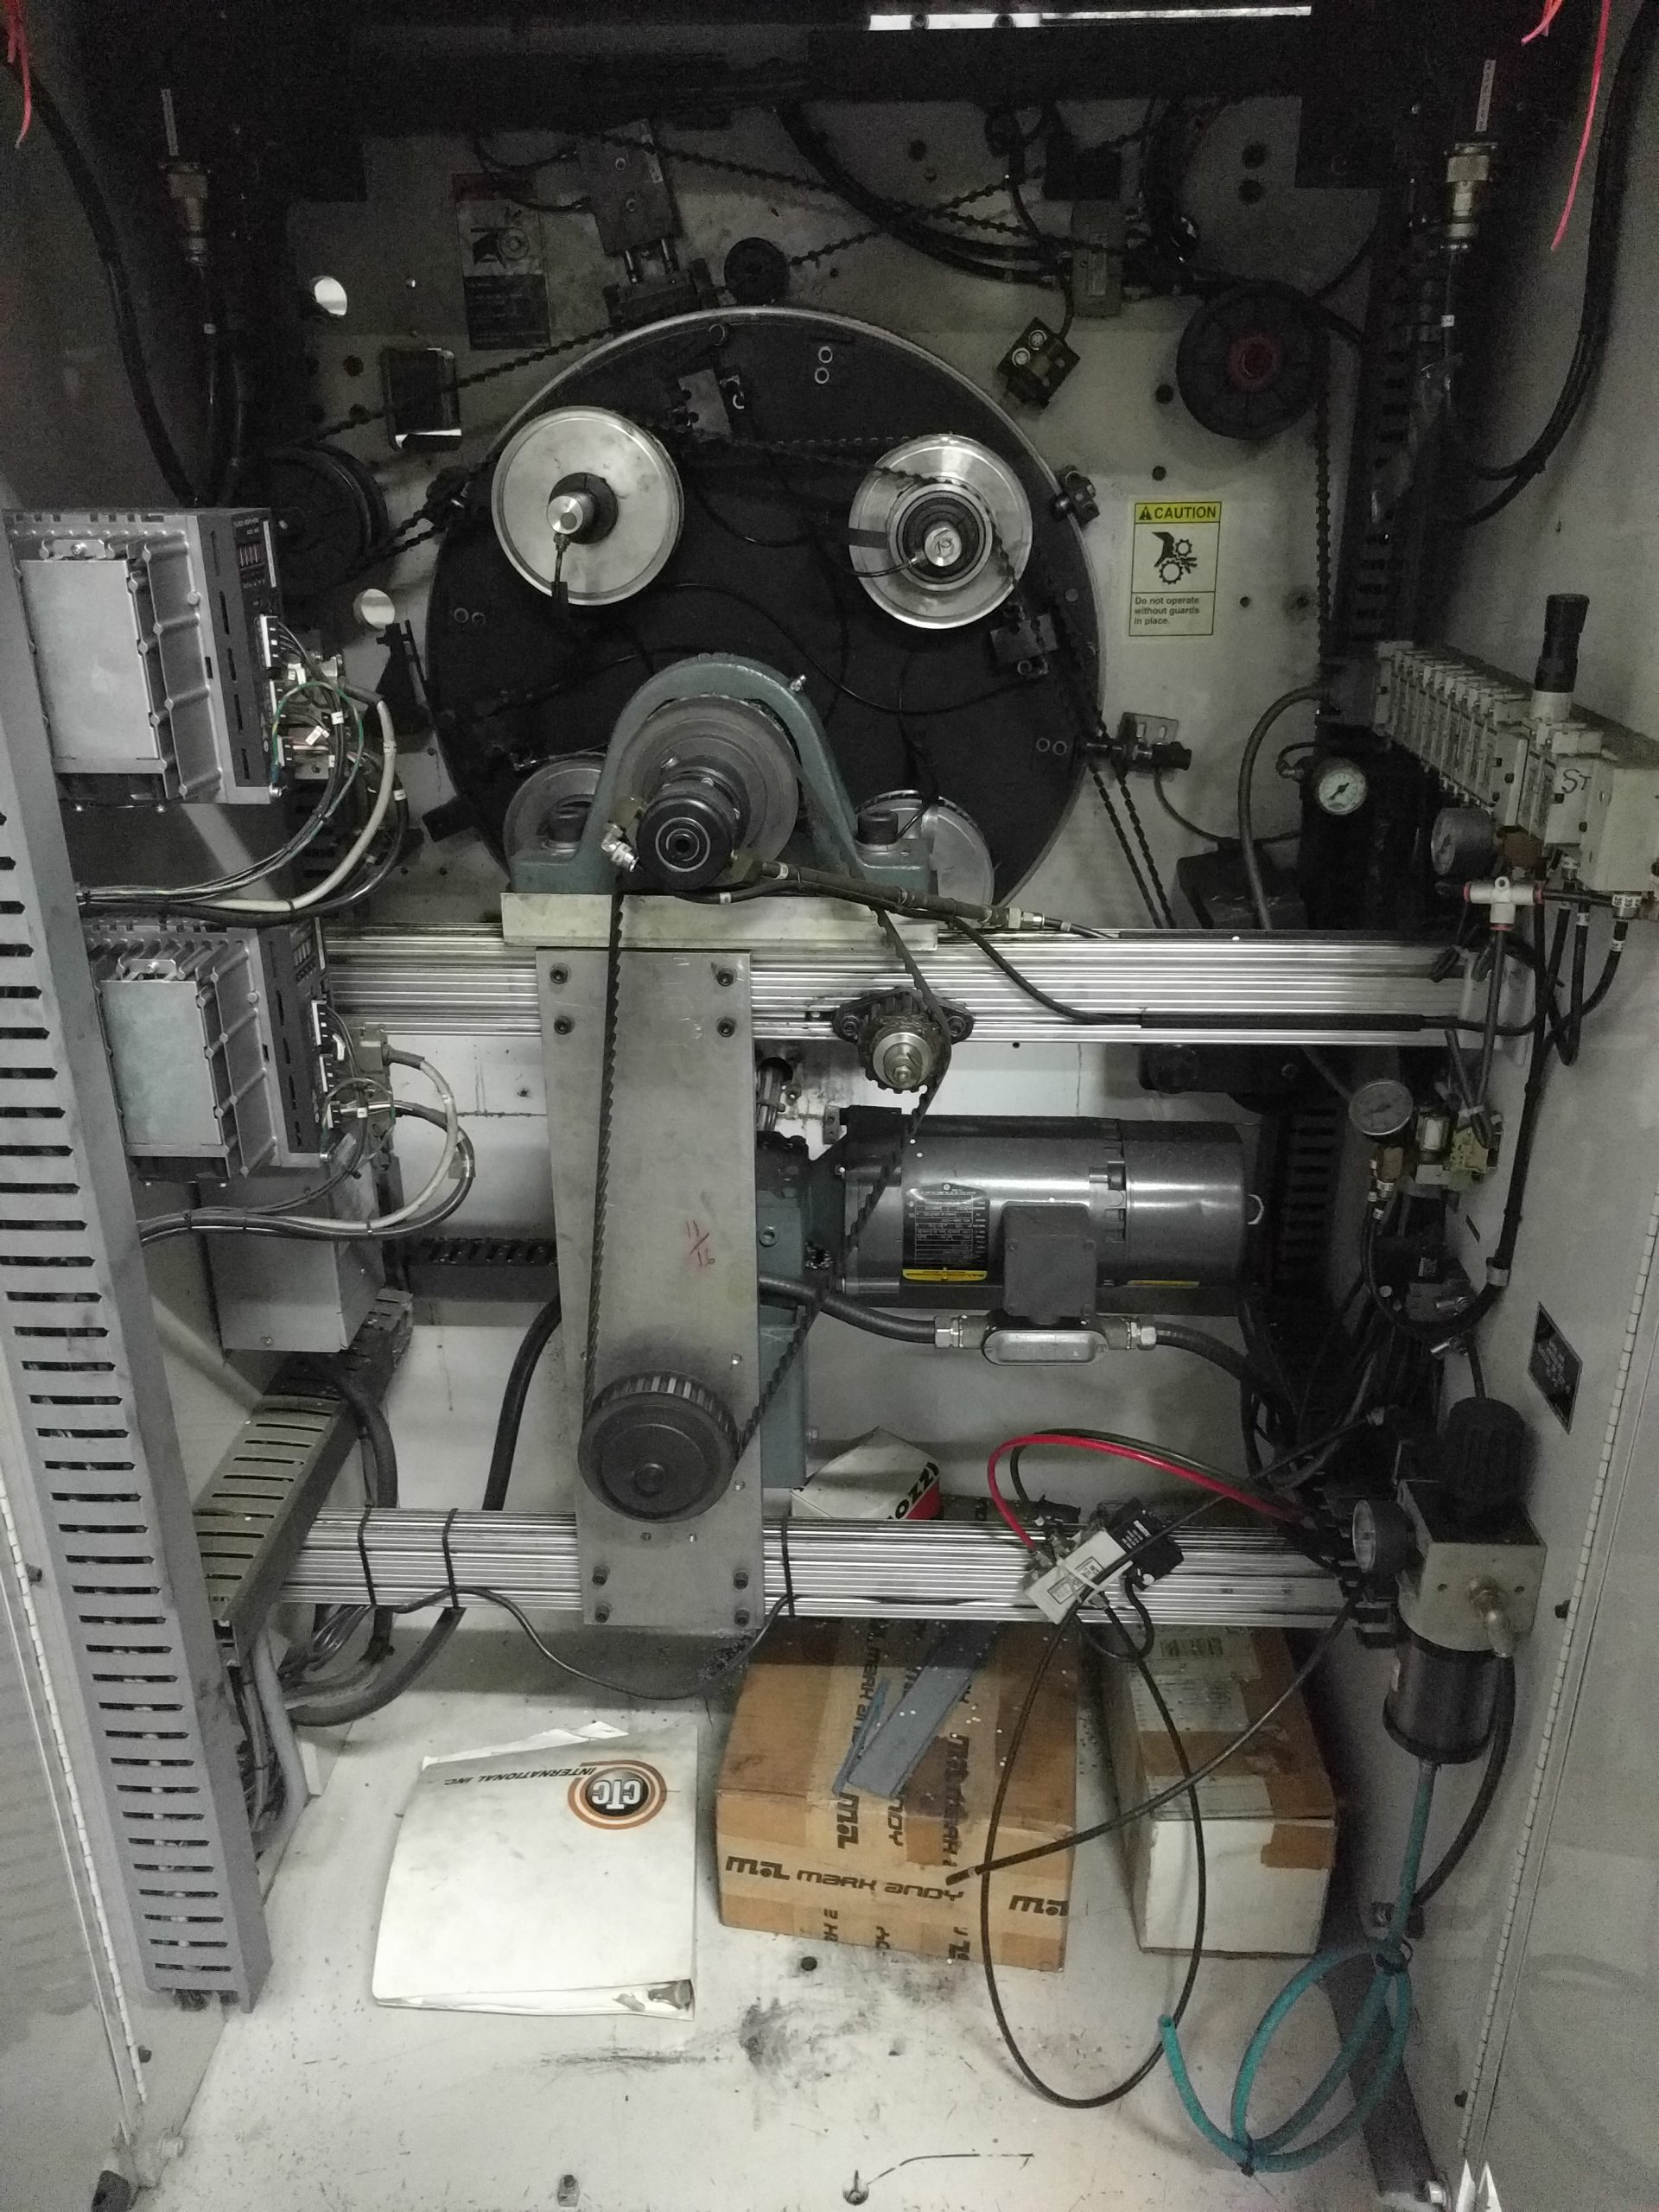 CTC Turret Rewinder - Used Flexo Printing Presses and Used Flexographic Equipment-6